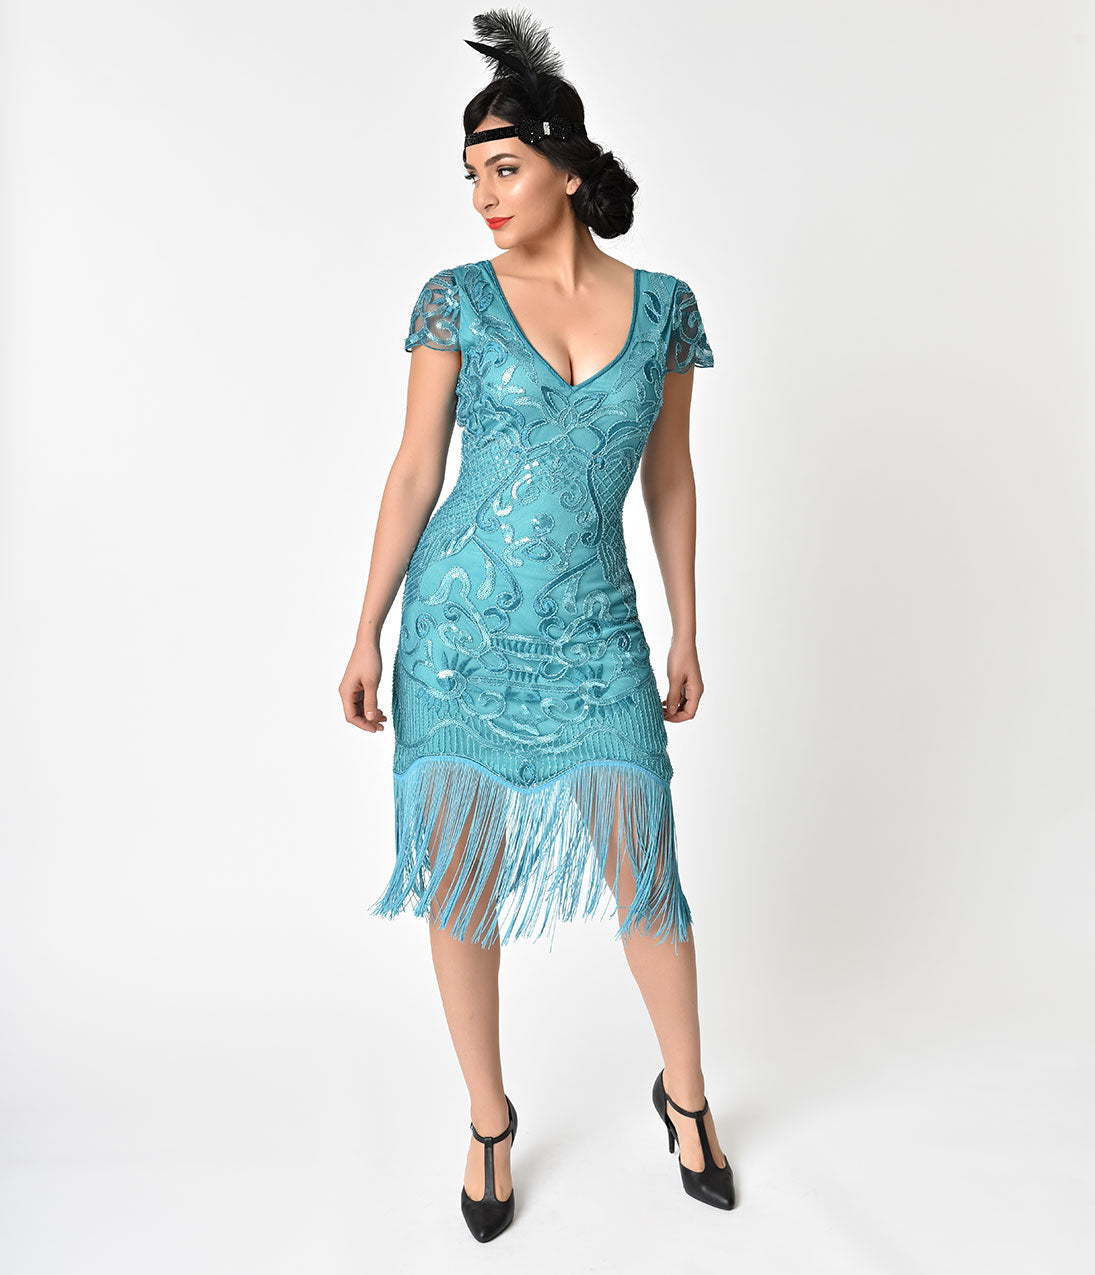 1920s Style Dresses, Flapper Dresses 1920S Style Turquoise Beaded Fringe Aurore Flapper Dress $98.00 AT vintagedancer.com